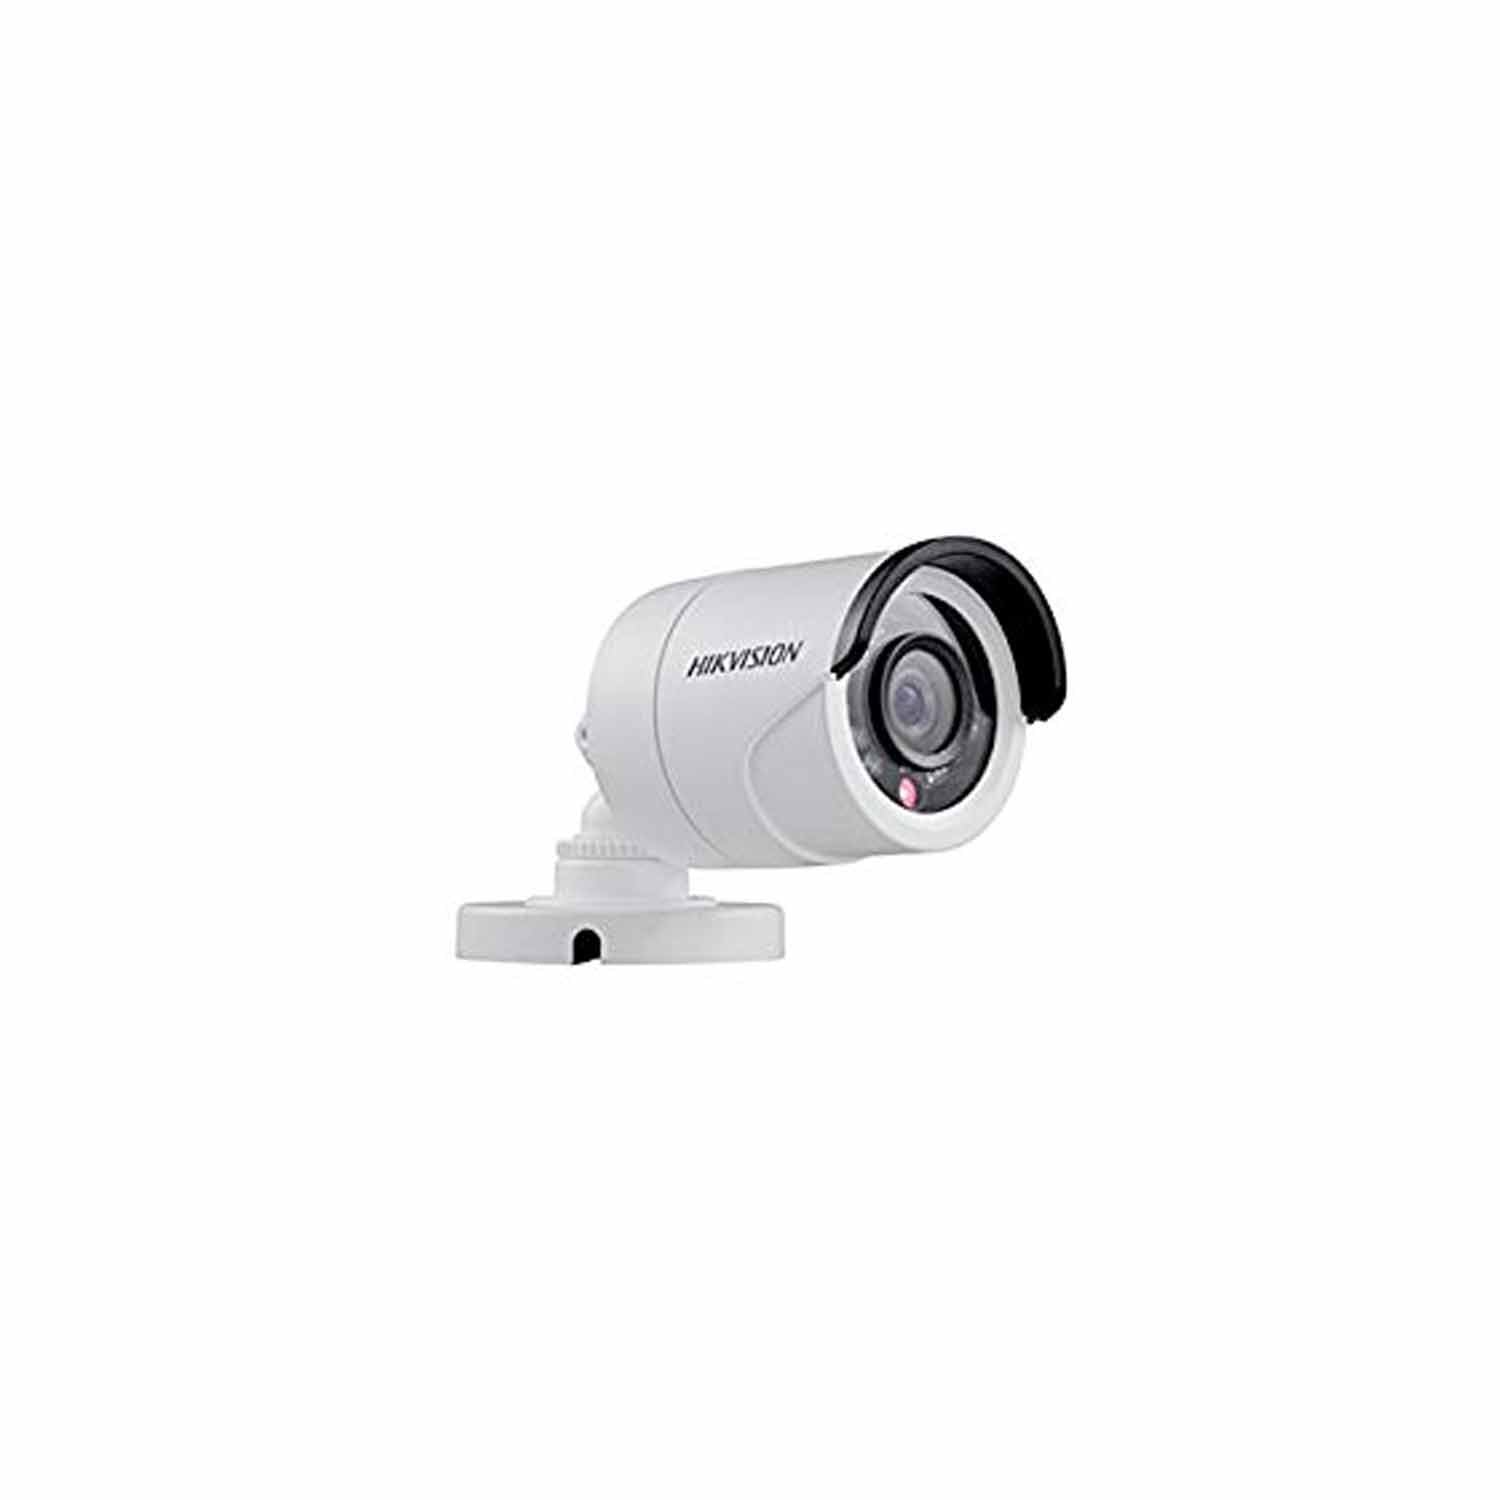 Hikvision DS-2CE16D0T-IRPF 1080P 2MP Indoor Camera